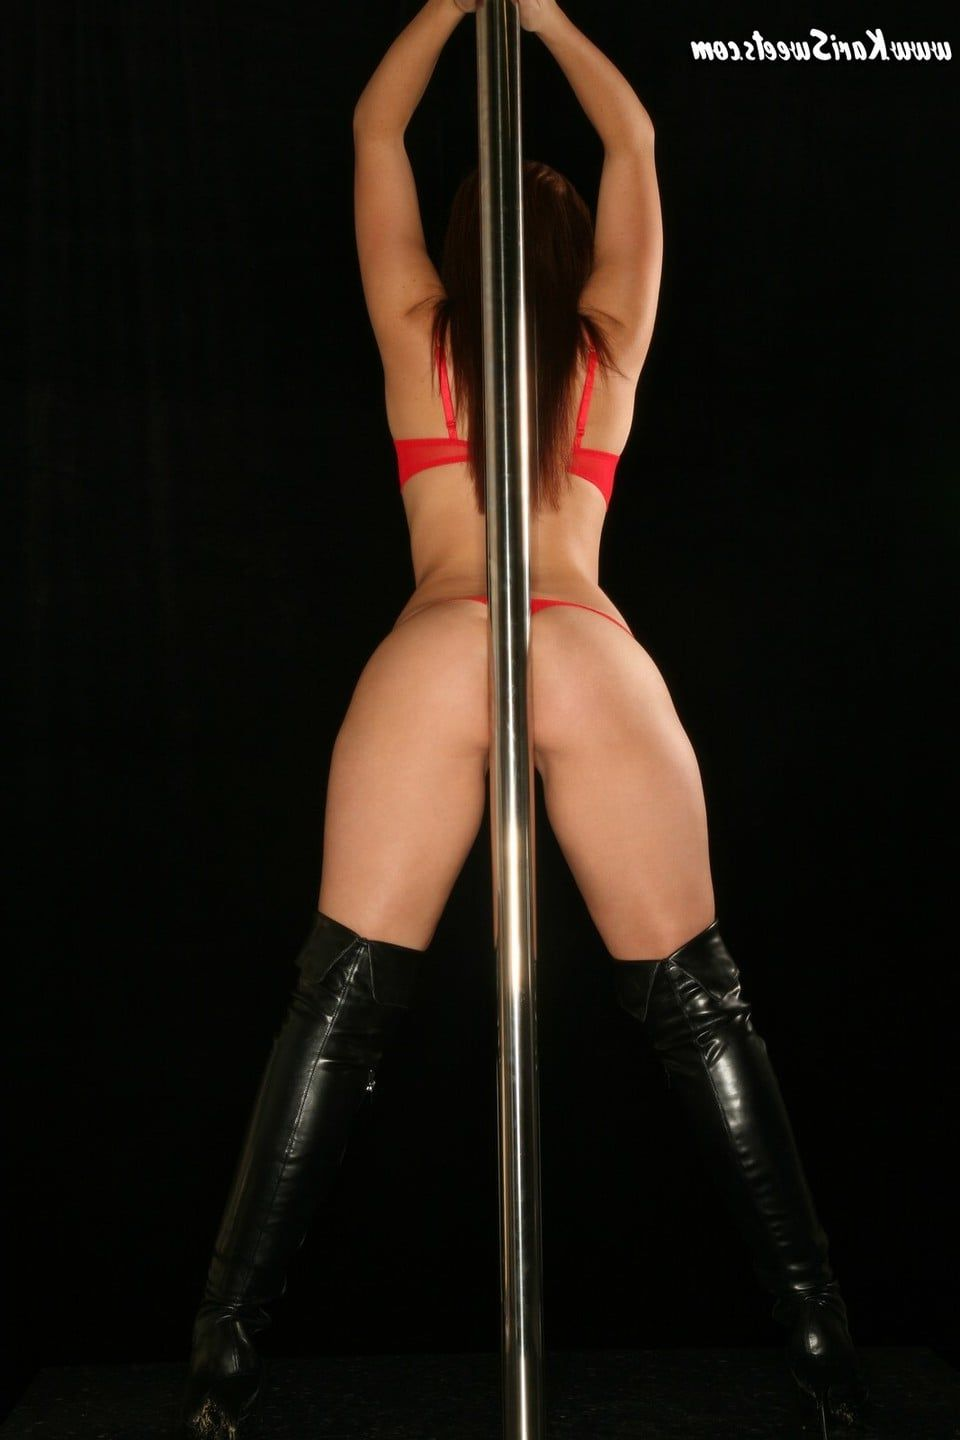 Nude women lap dancing will